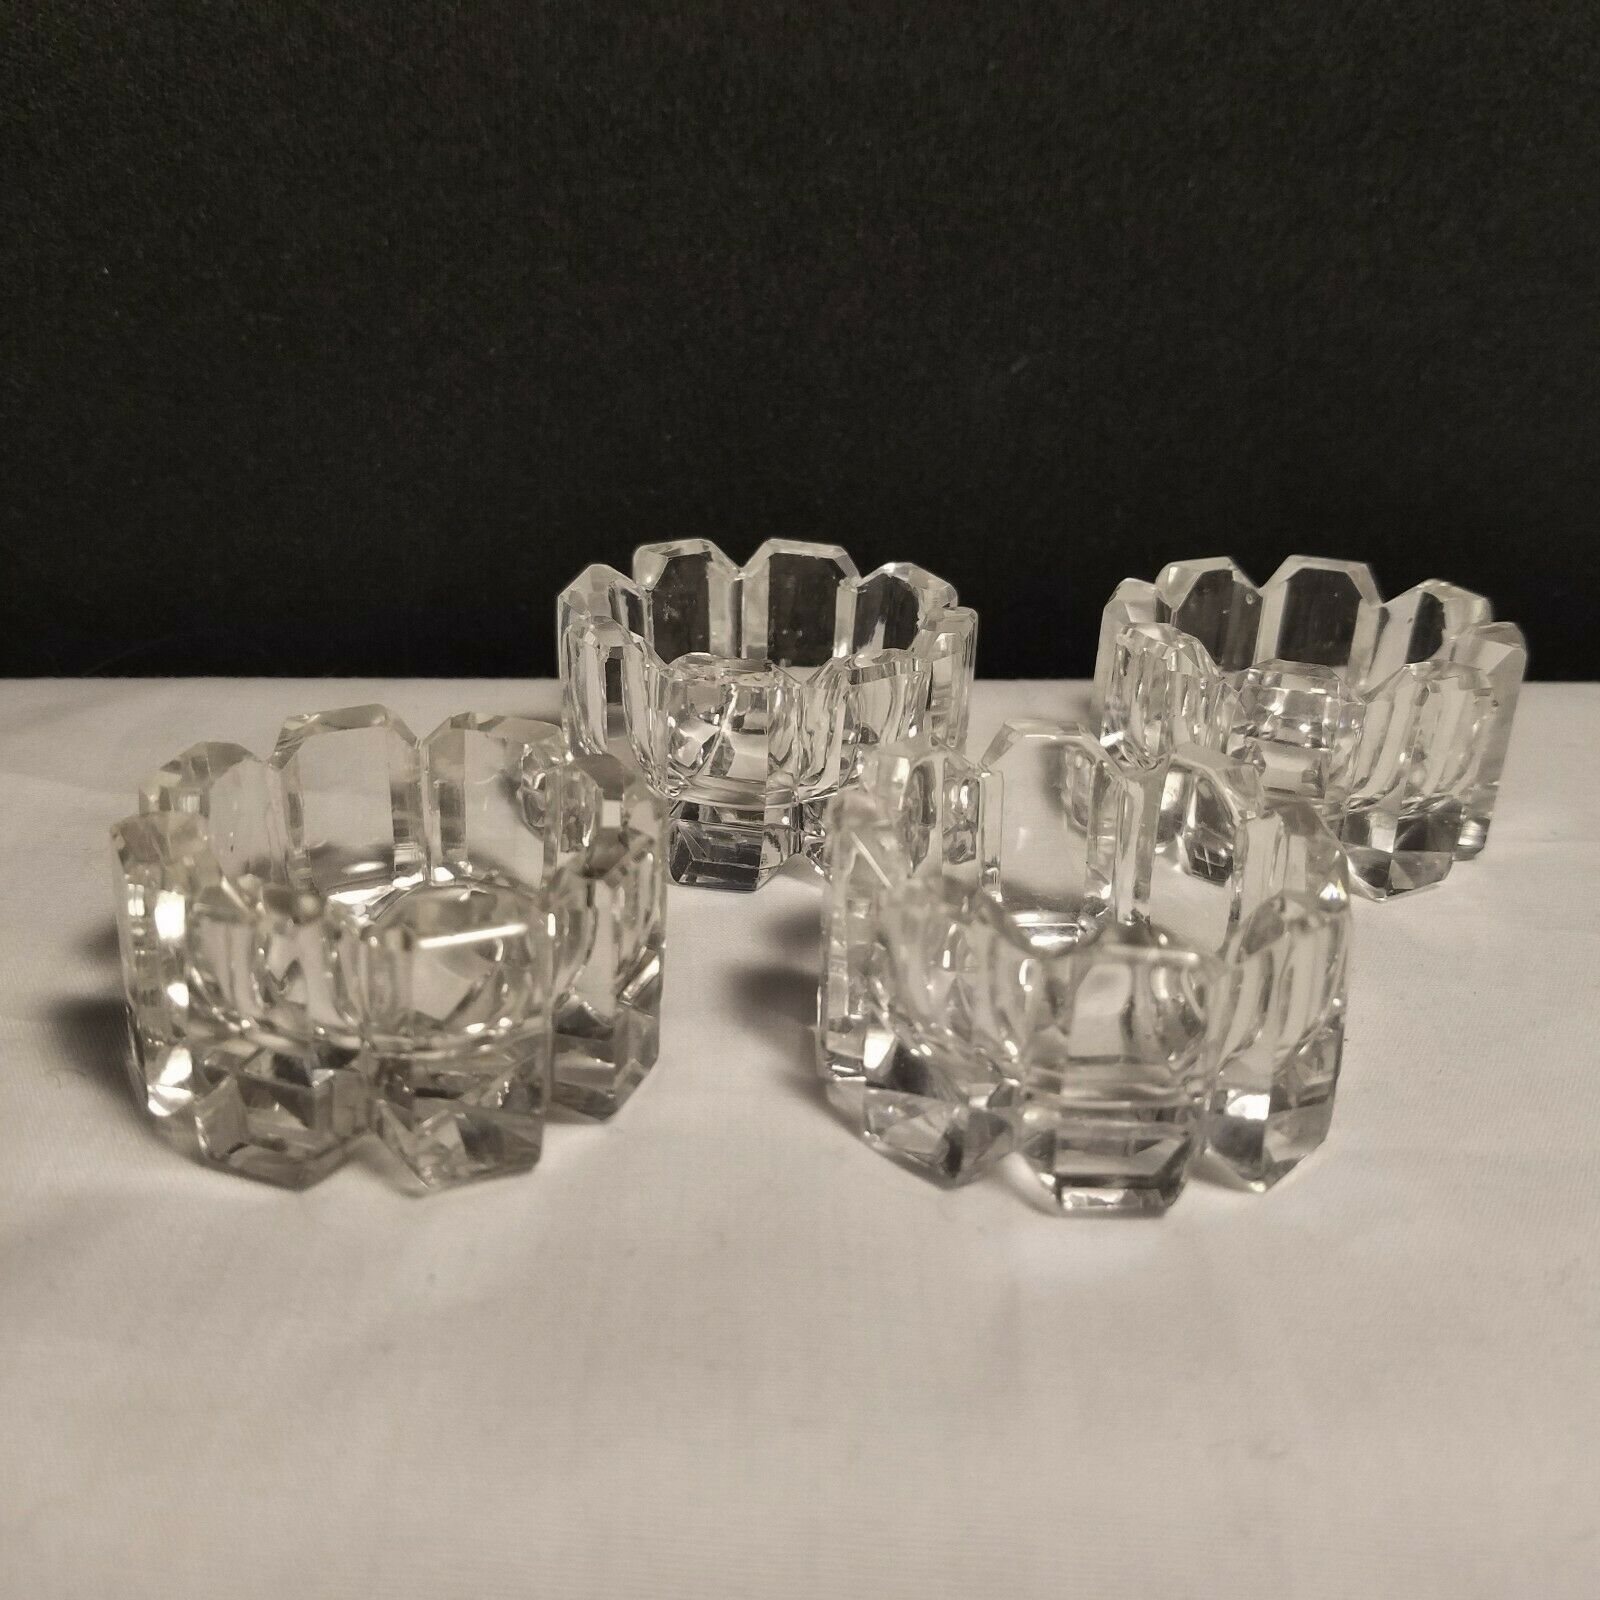 American Brilliant Period Arched Beveled Top Block Cut Open Salts Set of 4 Clear - $18.95